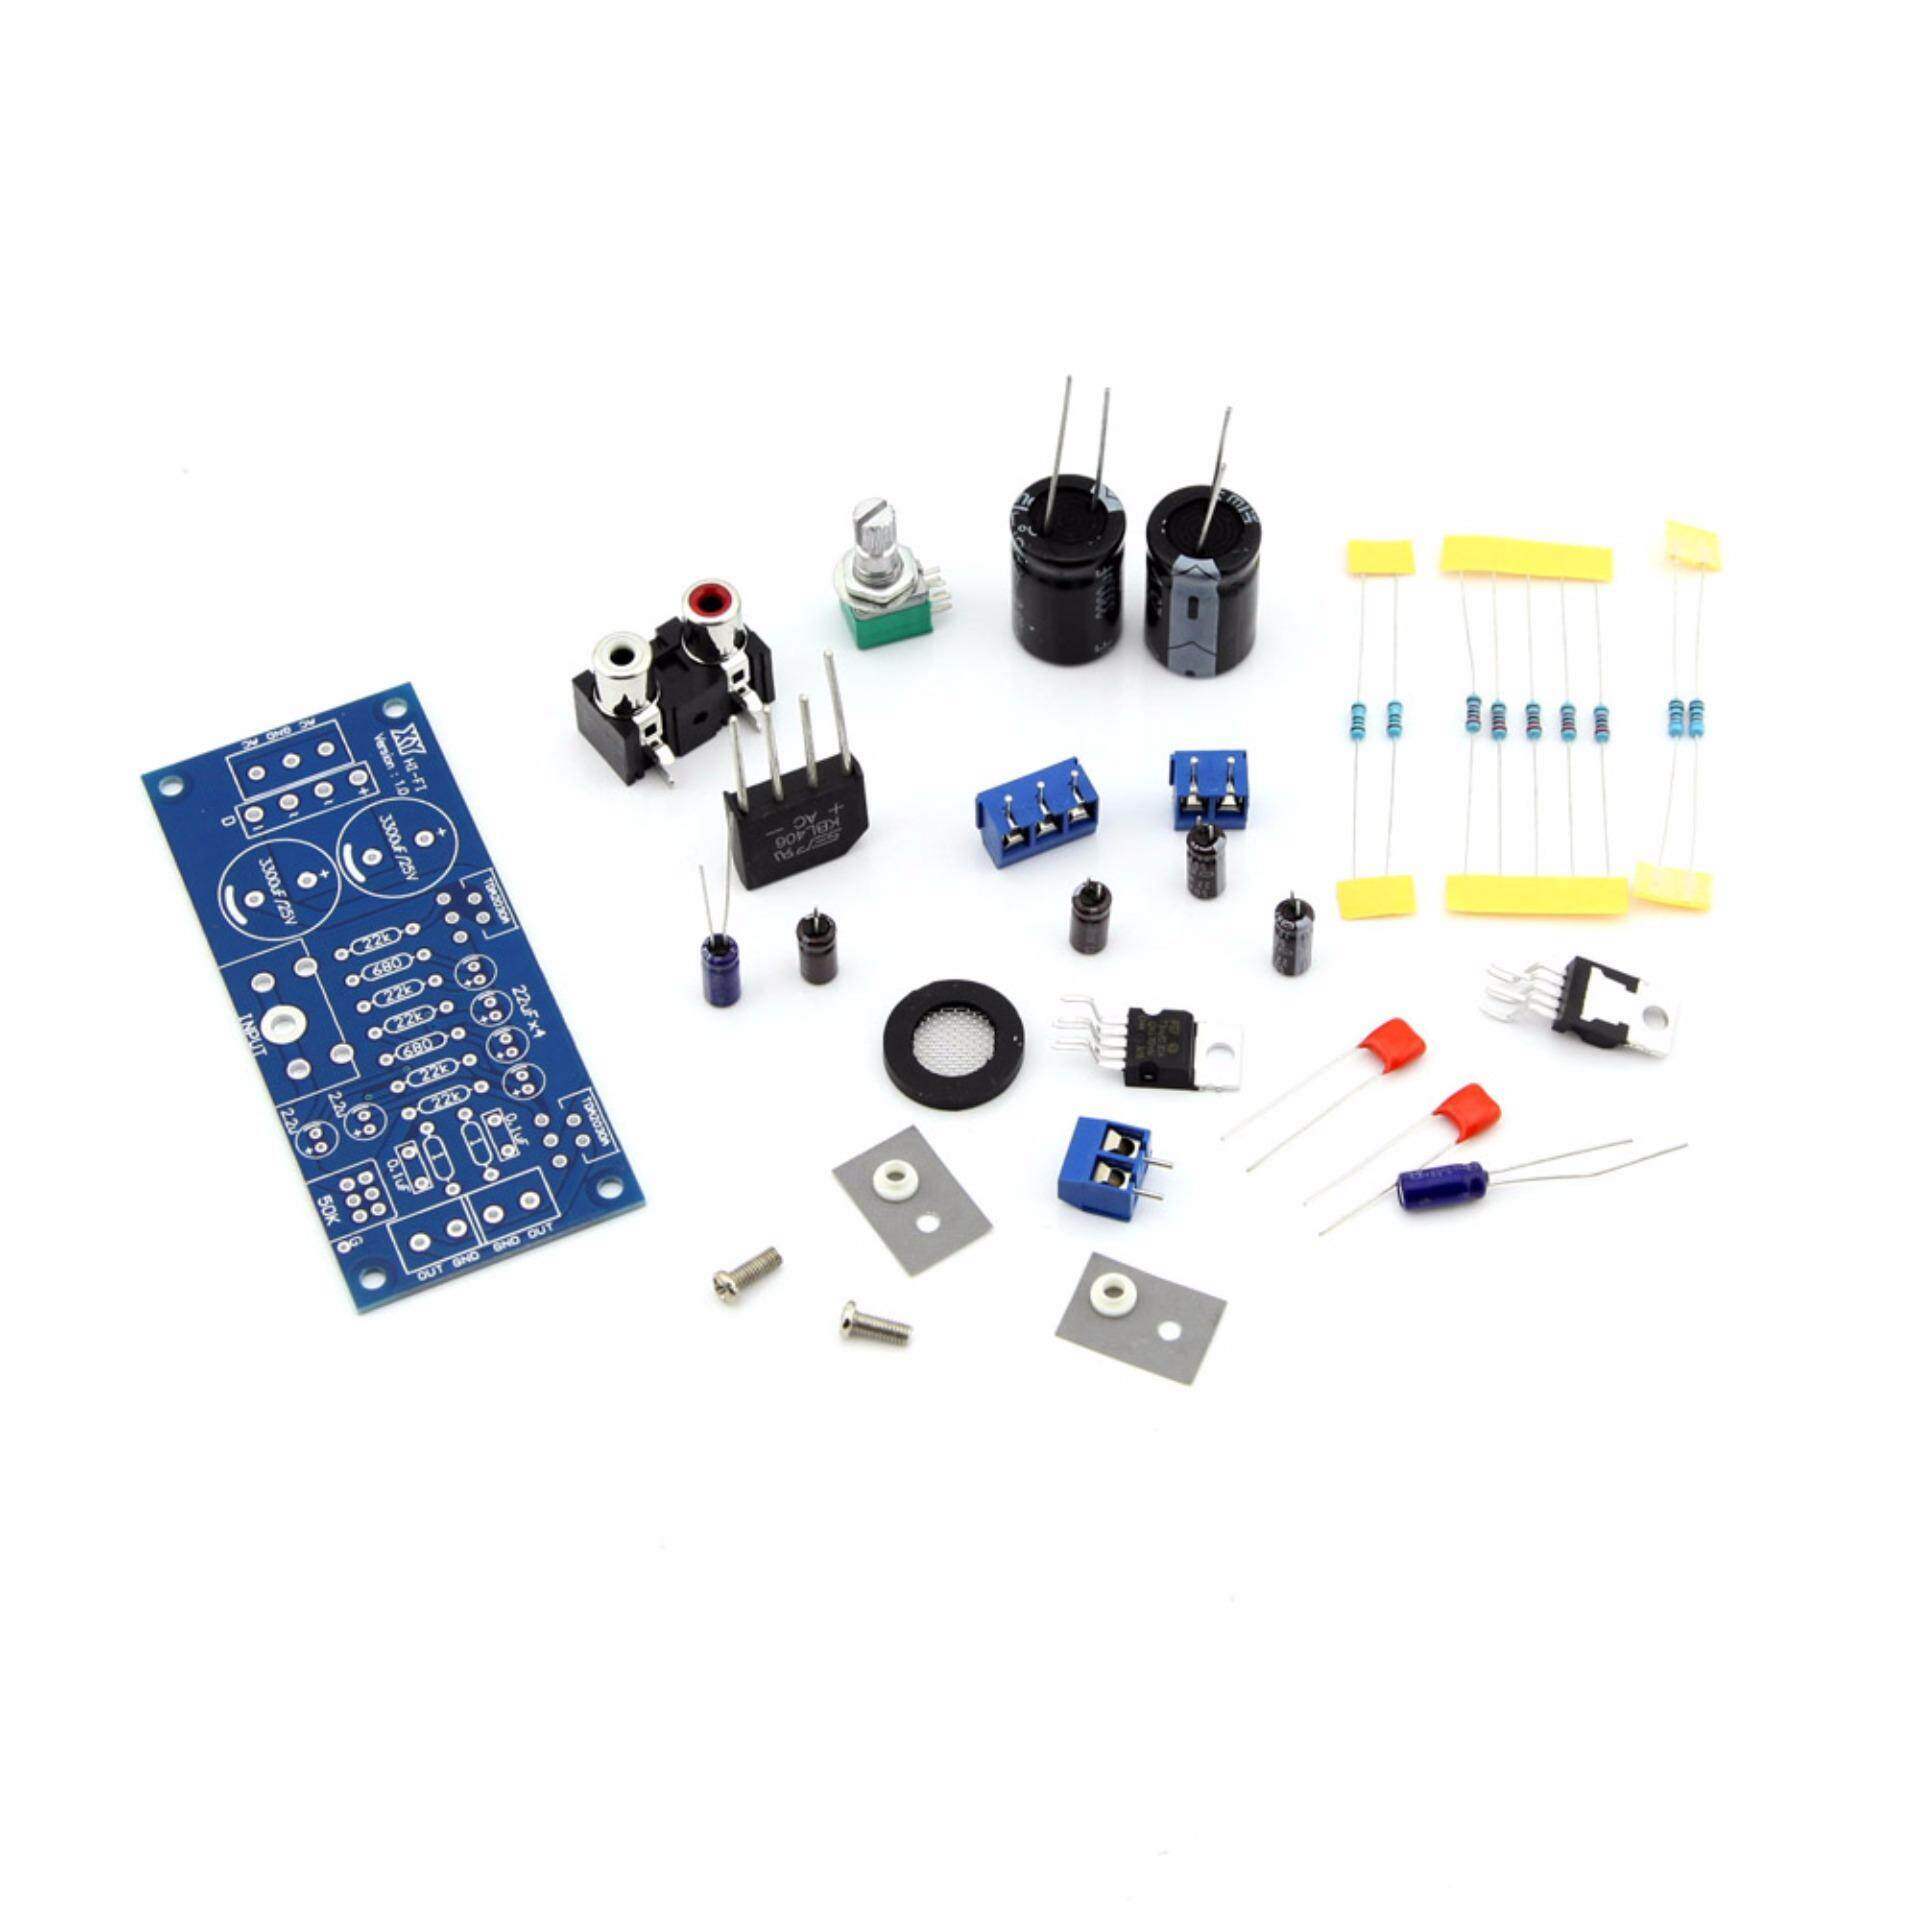 Buy Sell Cheapest Audio Amplify Board Best Quality Product Deals 23w Dual Power Amplifier Circuit Tda2030a 2 Channels Subwoofer Stereo Kit Diy Intl